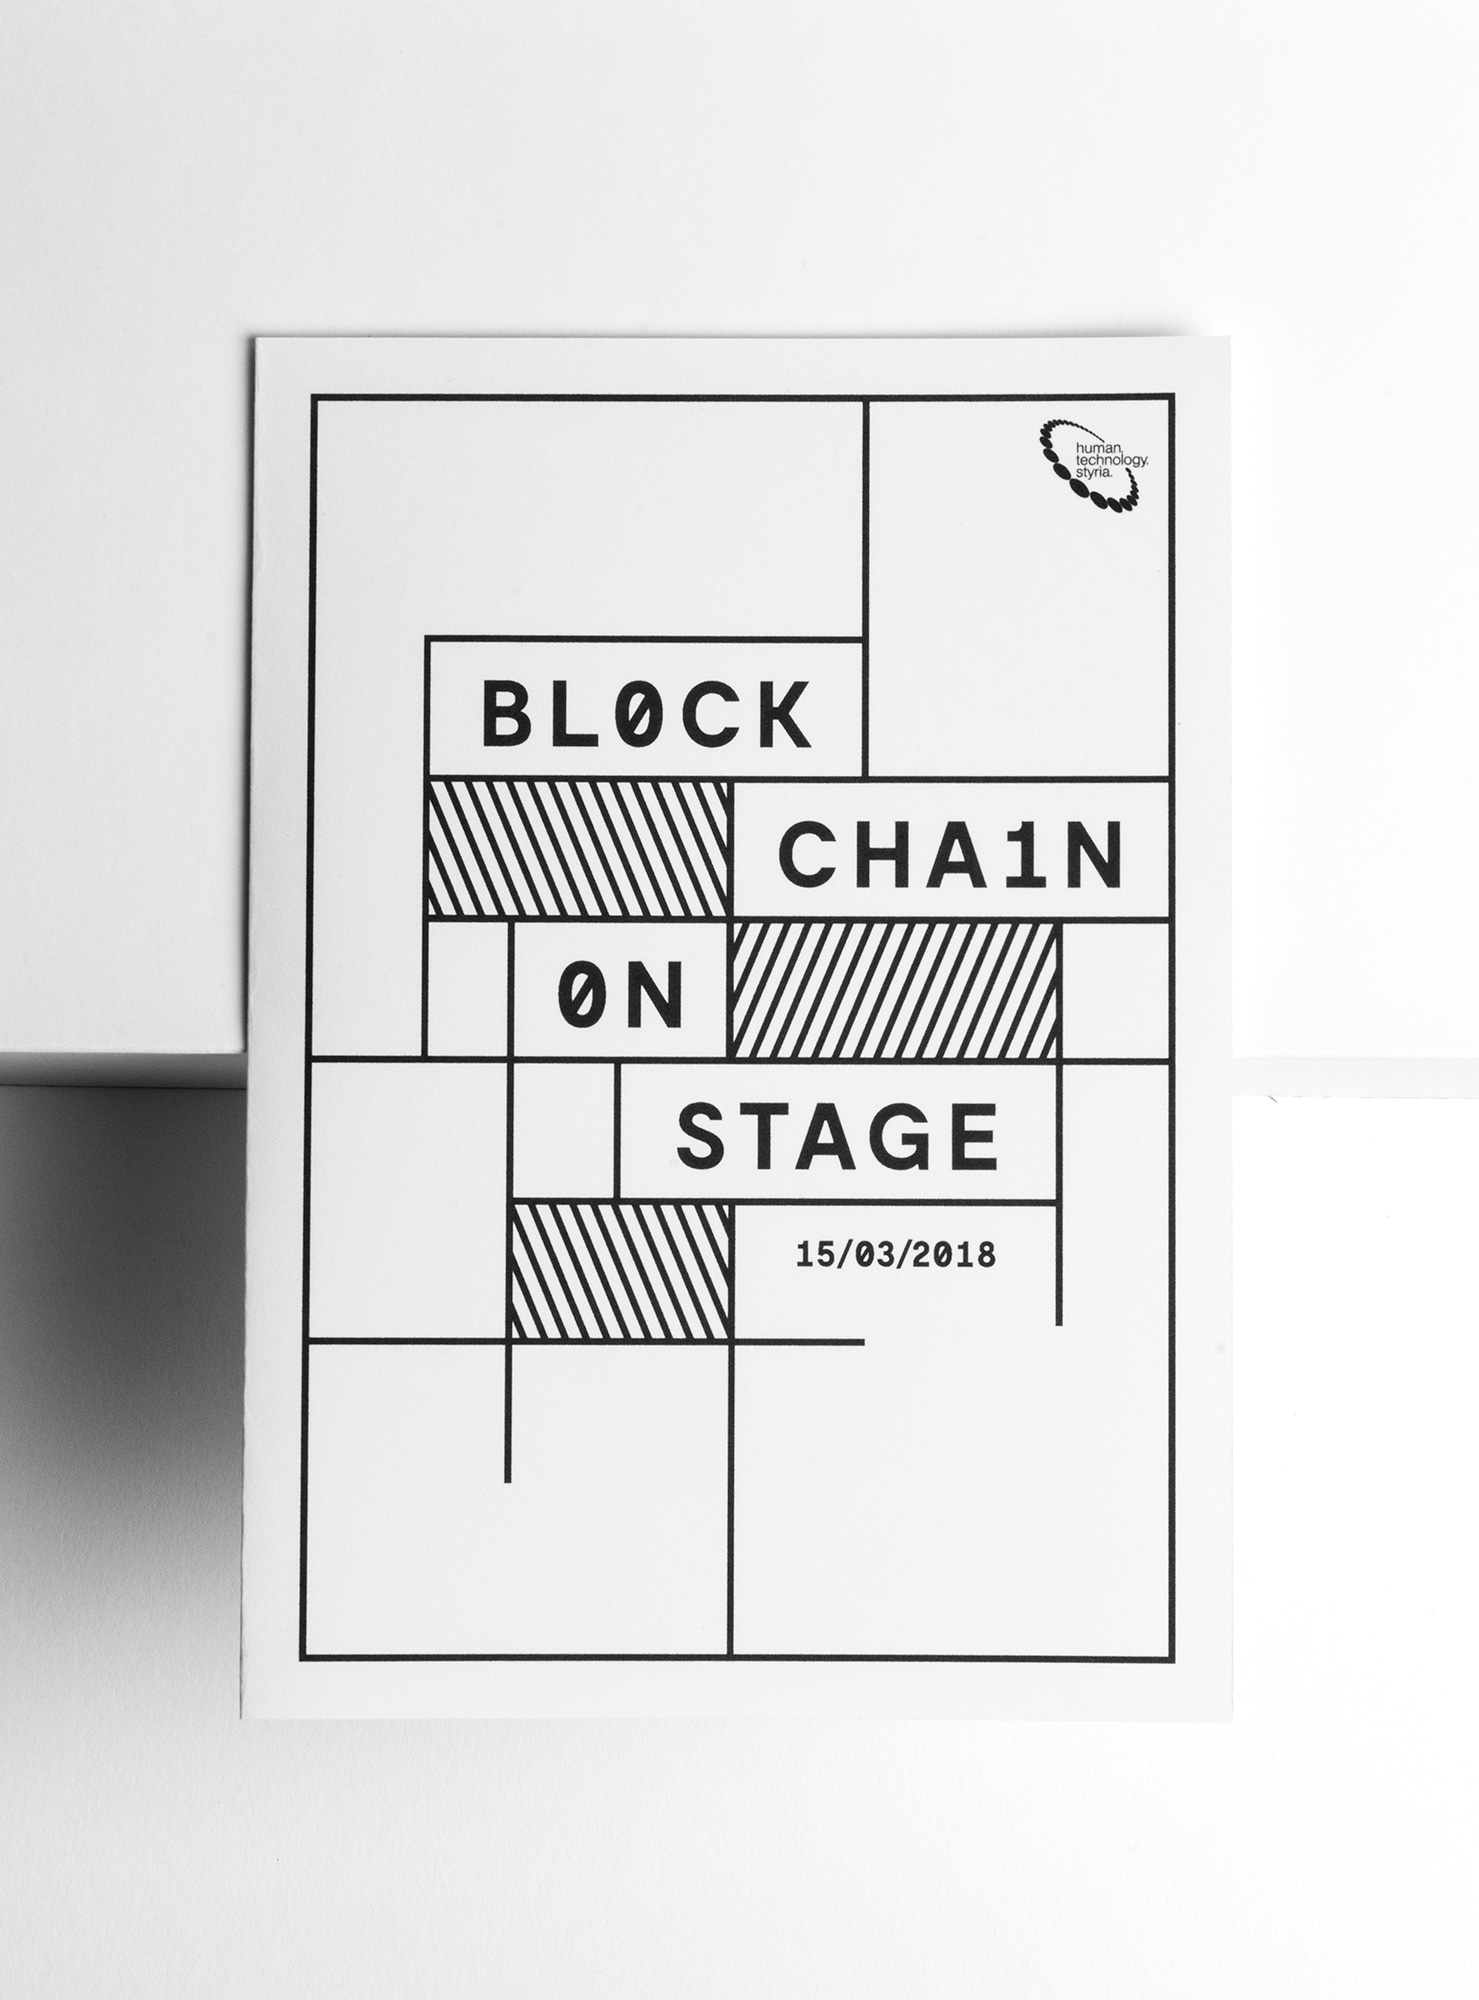 Blockchain on Stage